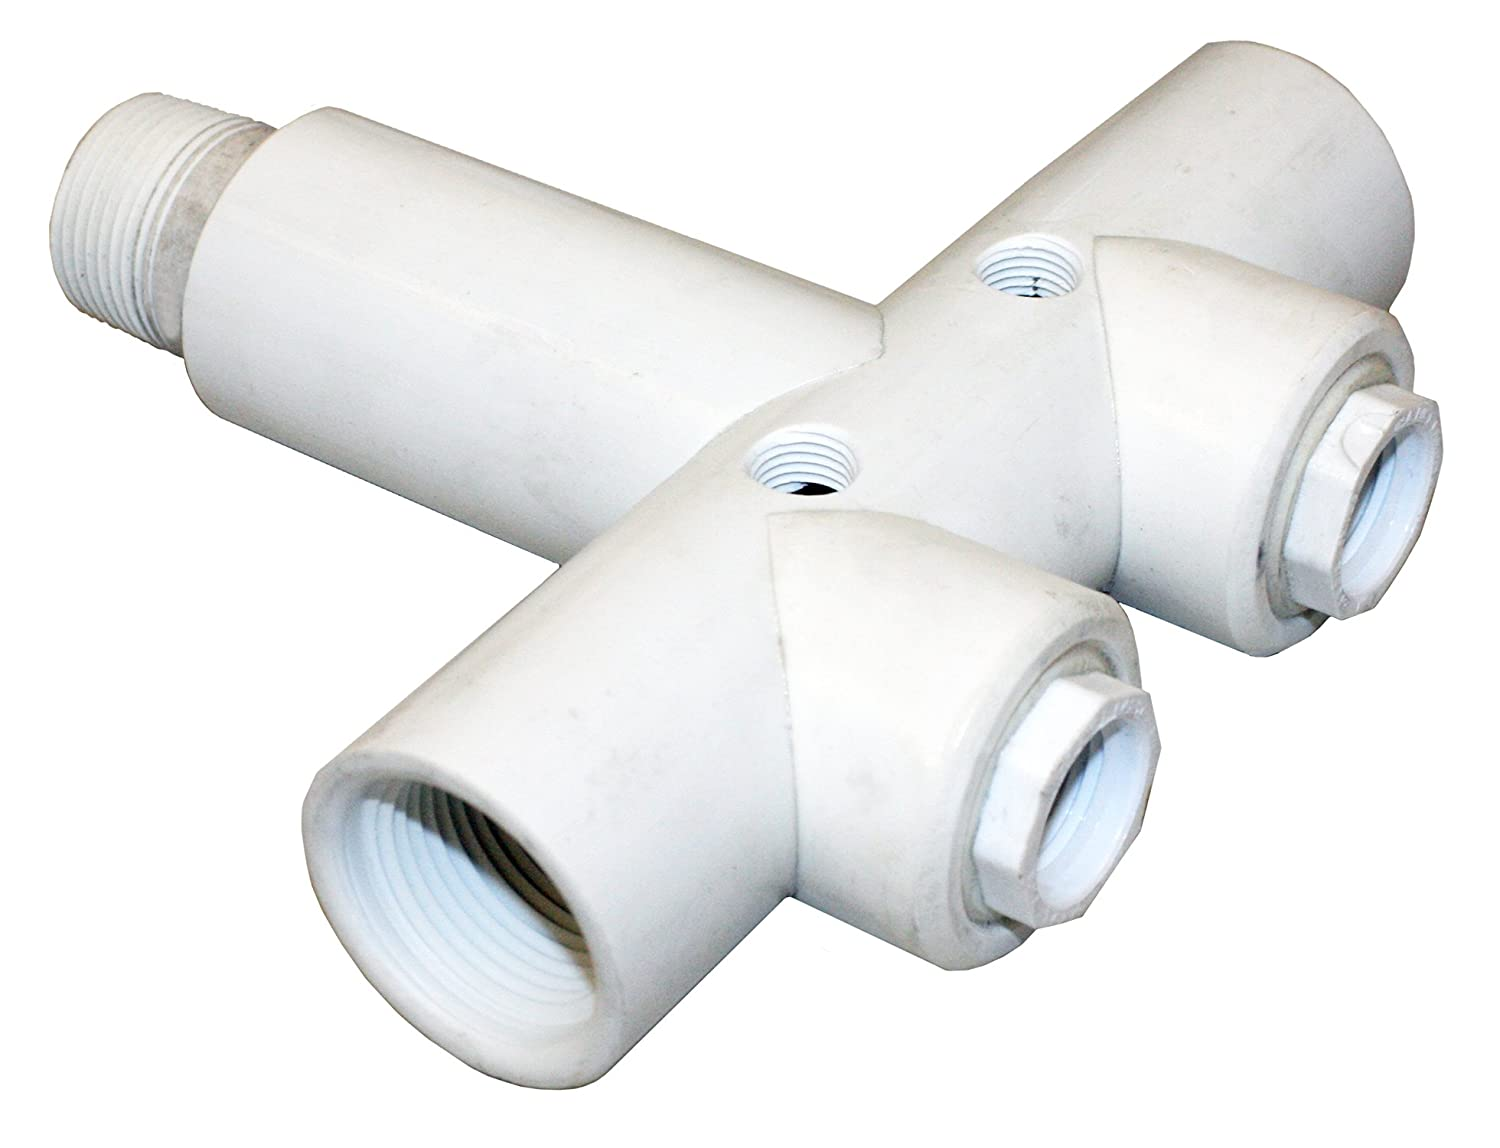 2 SCH 120 PVC 1 FIP Lateral Connection, 1 MIP Tank Connection Merrill MFG PVCHDT1002M PVC Tank Tee 2 1//2 Drain Hole 1 MIP Tank Connection 1 FIP Lateral Connection 1//2 Drain Hole